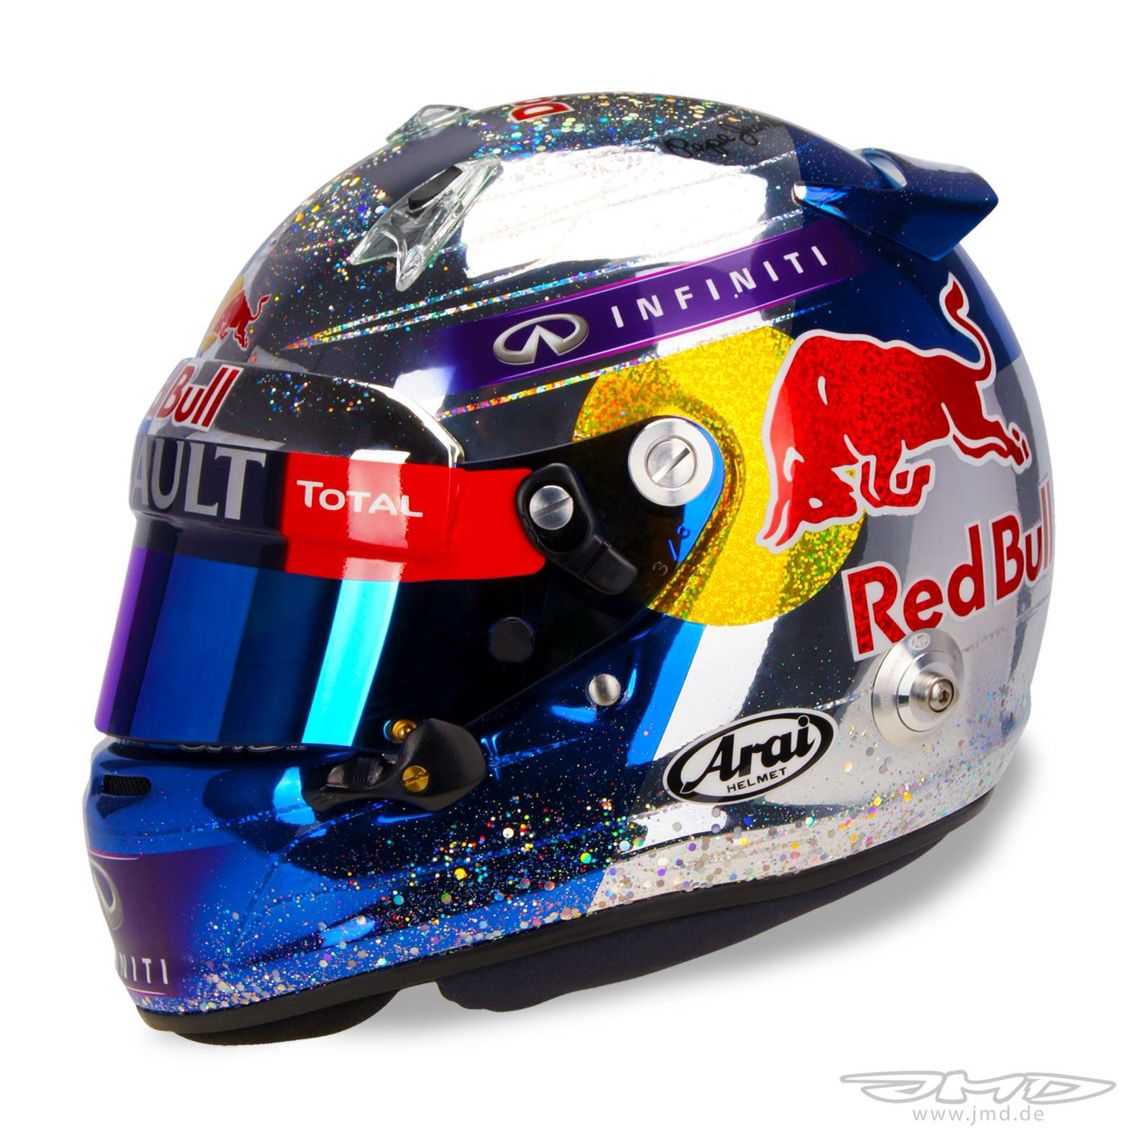 Vettel helmet design abu dhabi gp 2014 last one in red for Helm design